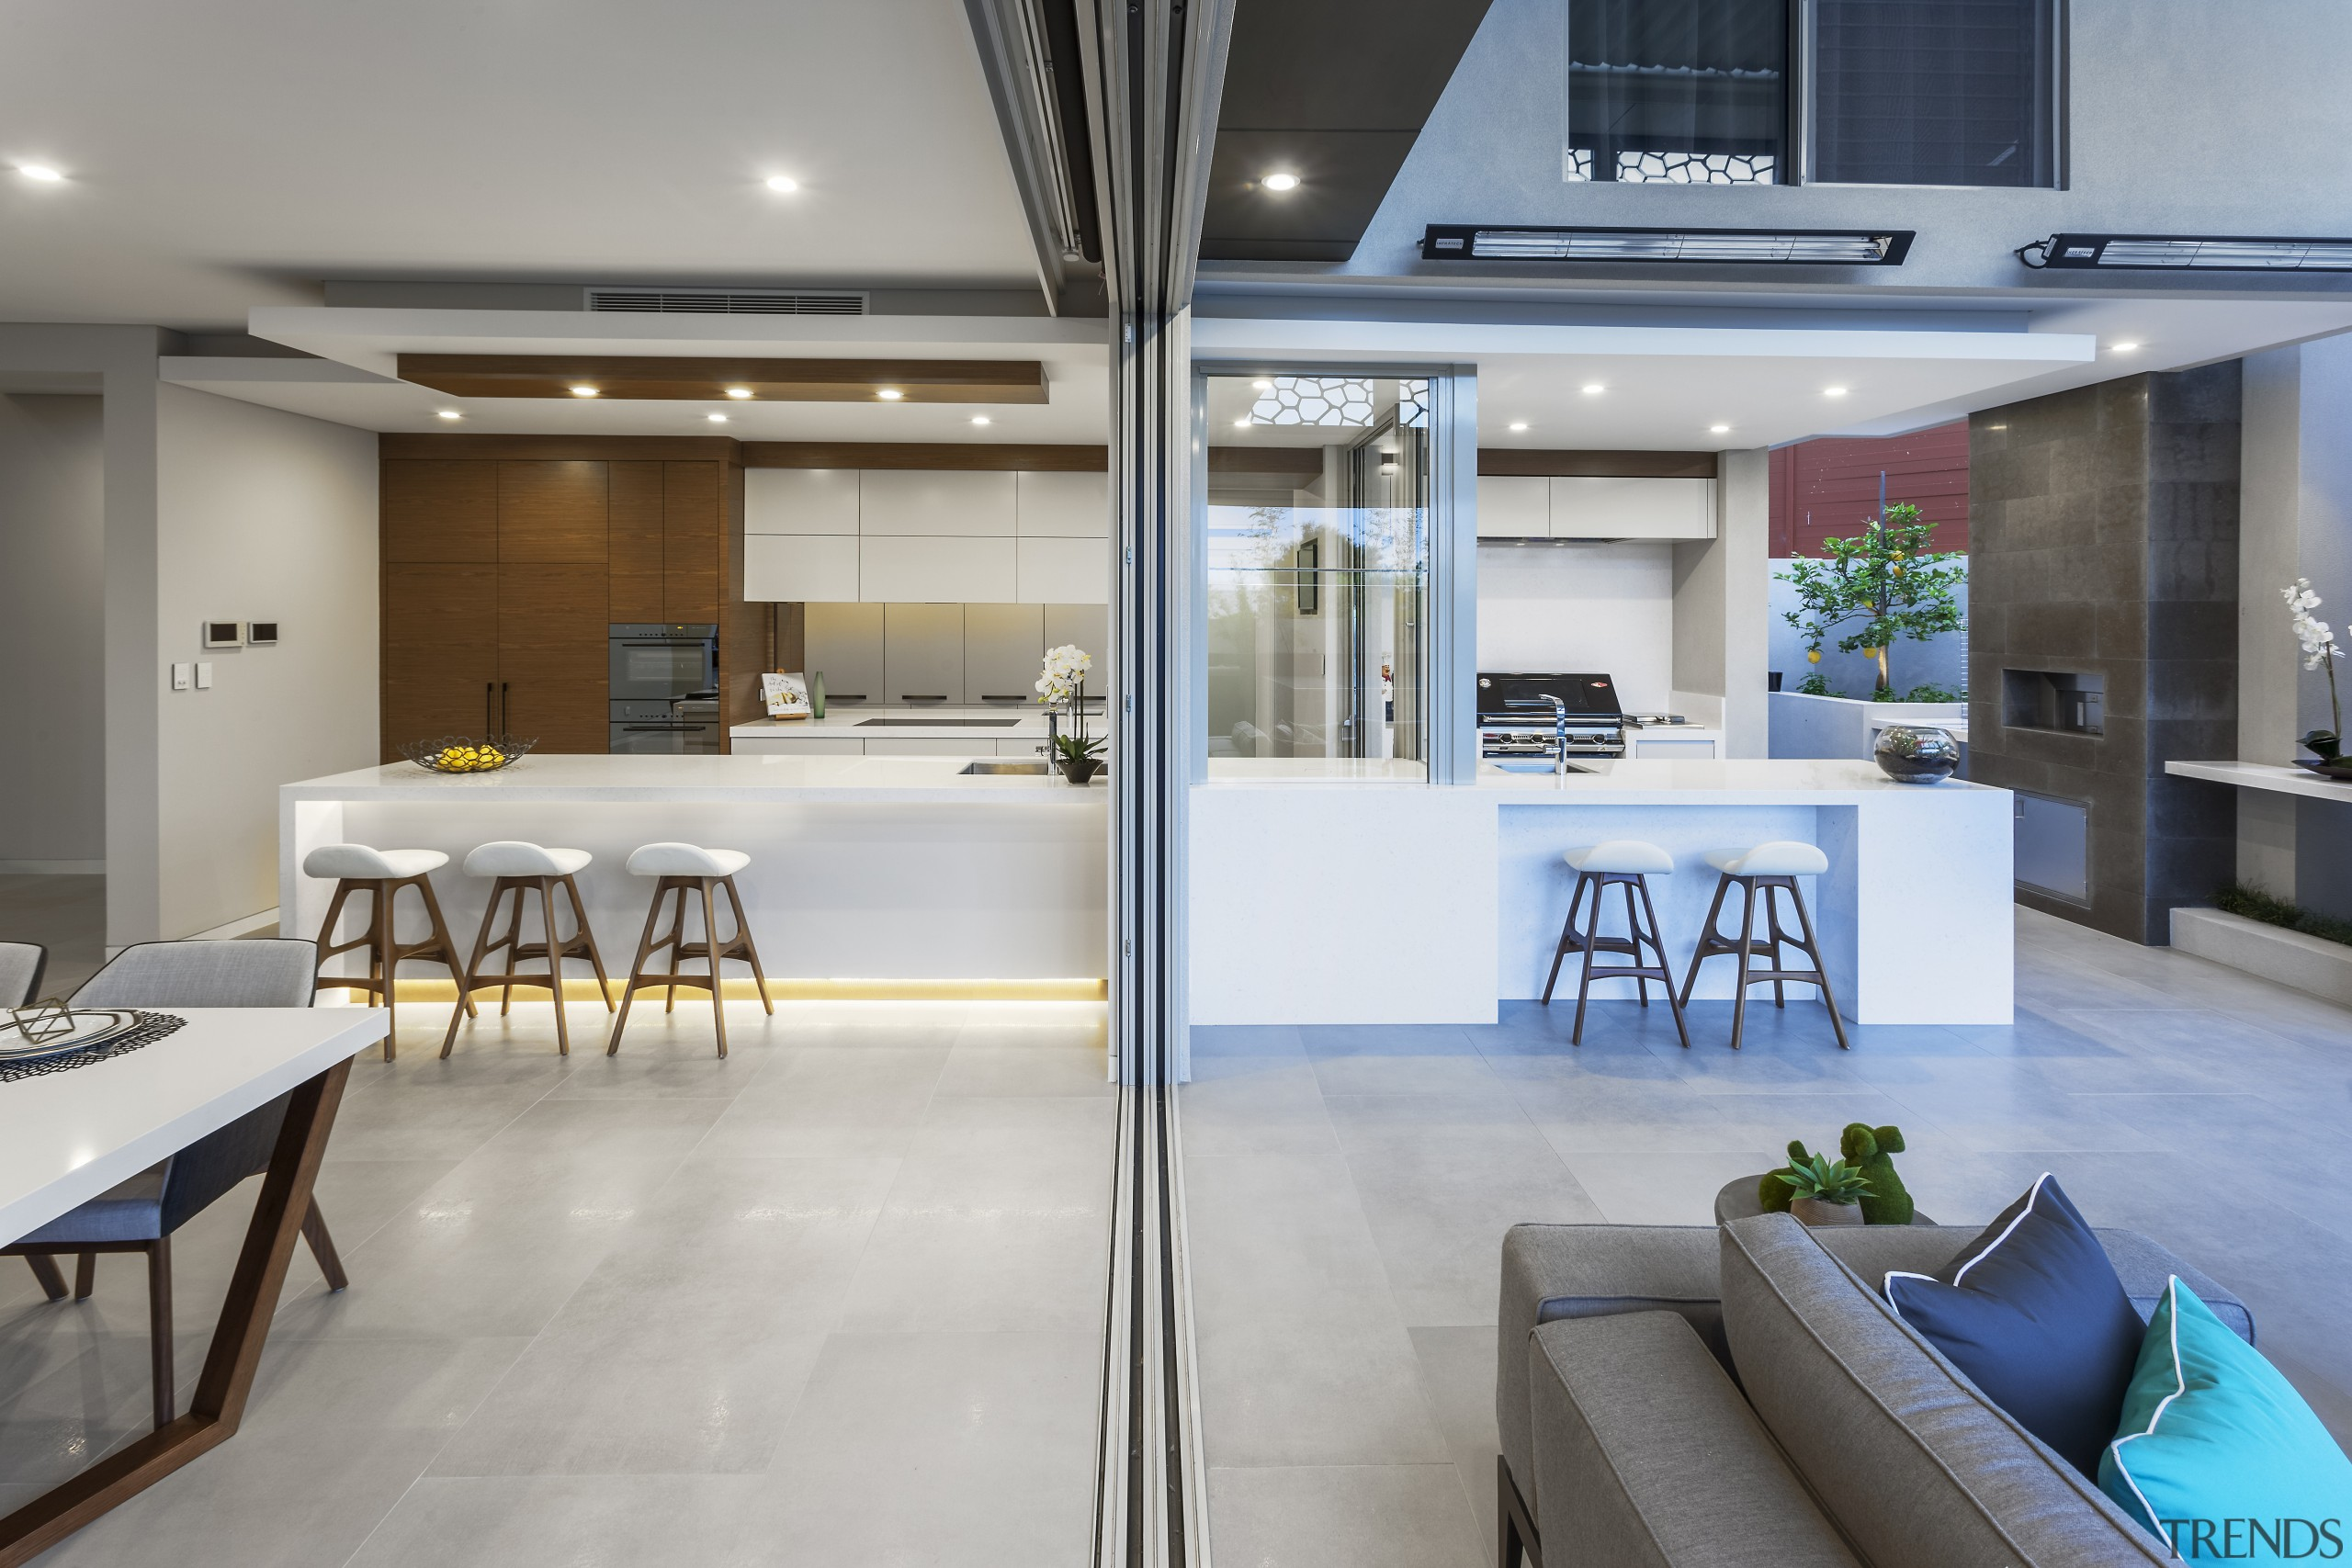 A dropped ceiling delineates the indoor kitchen in interior design, gray